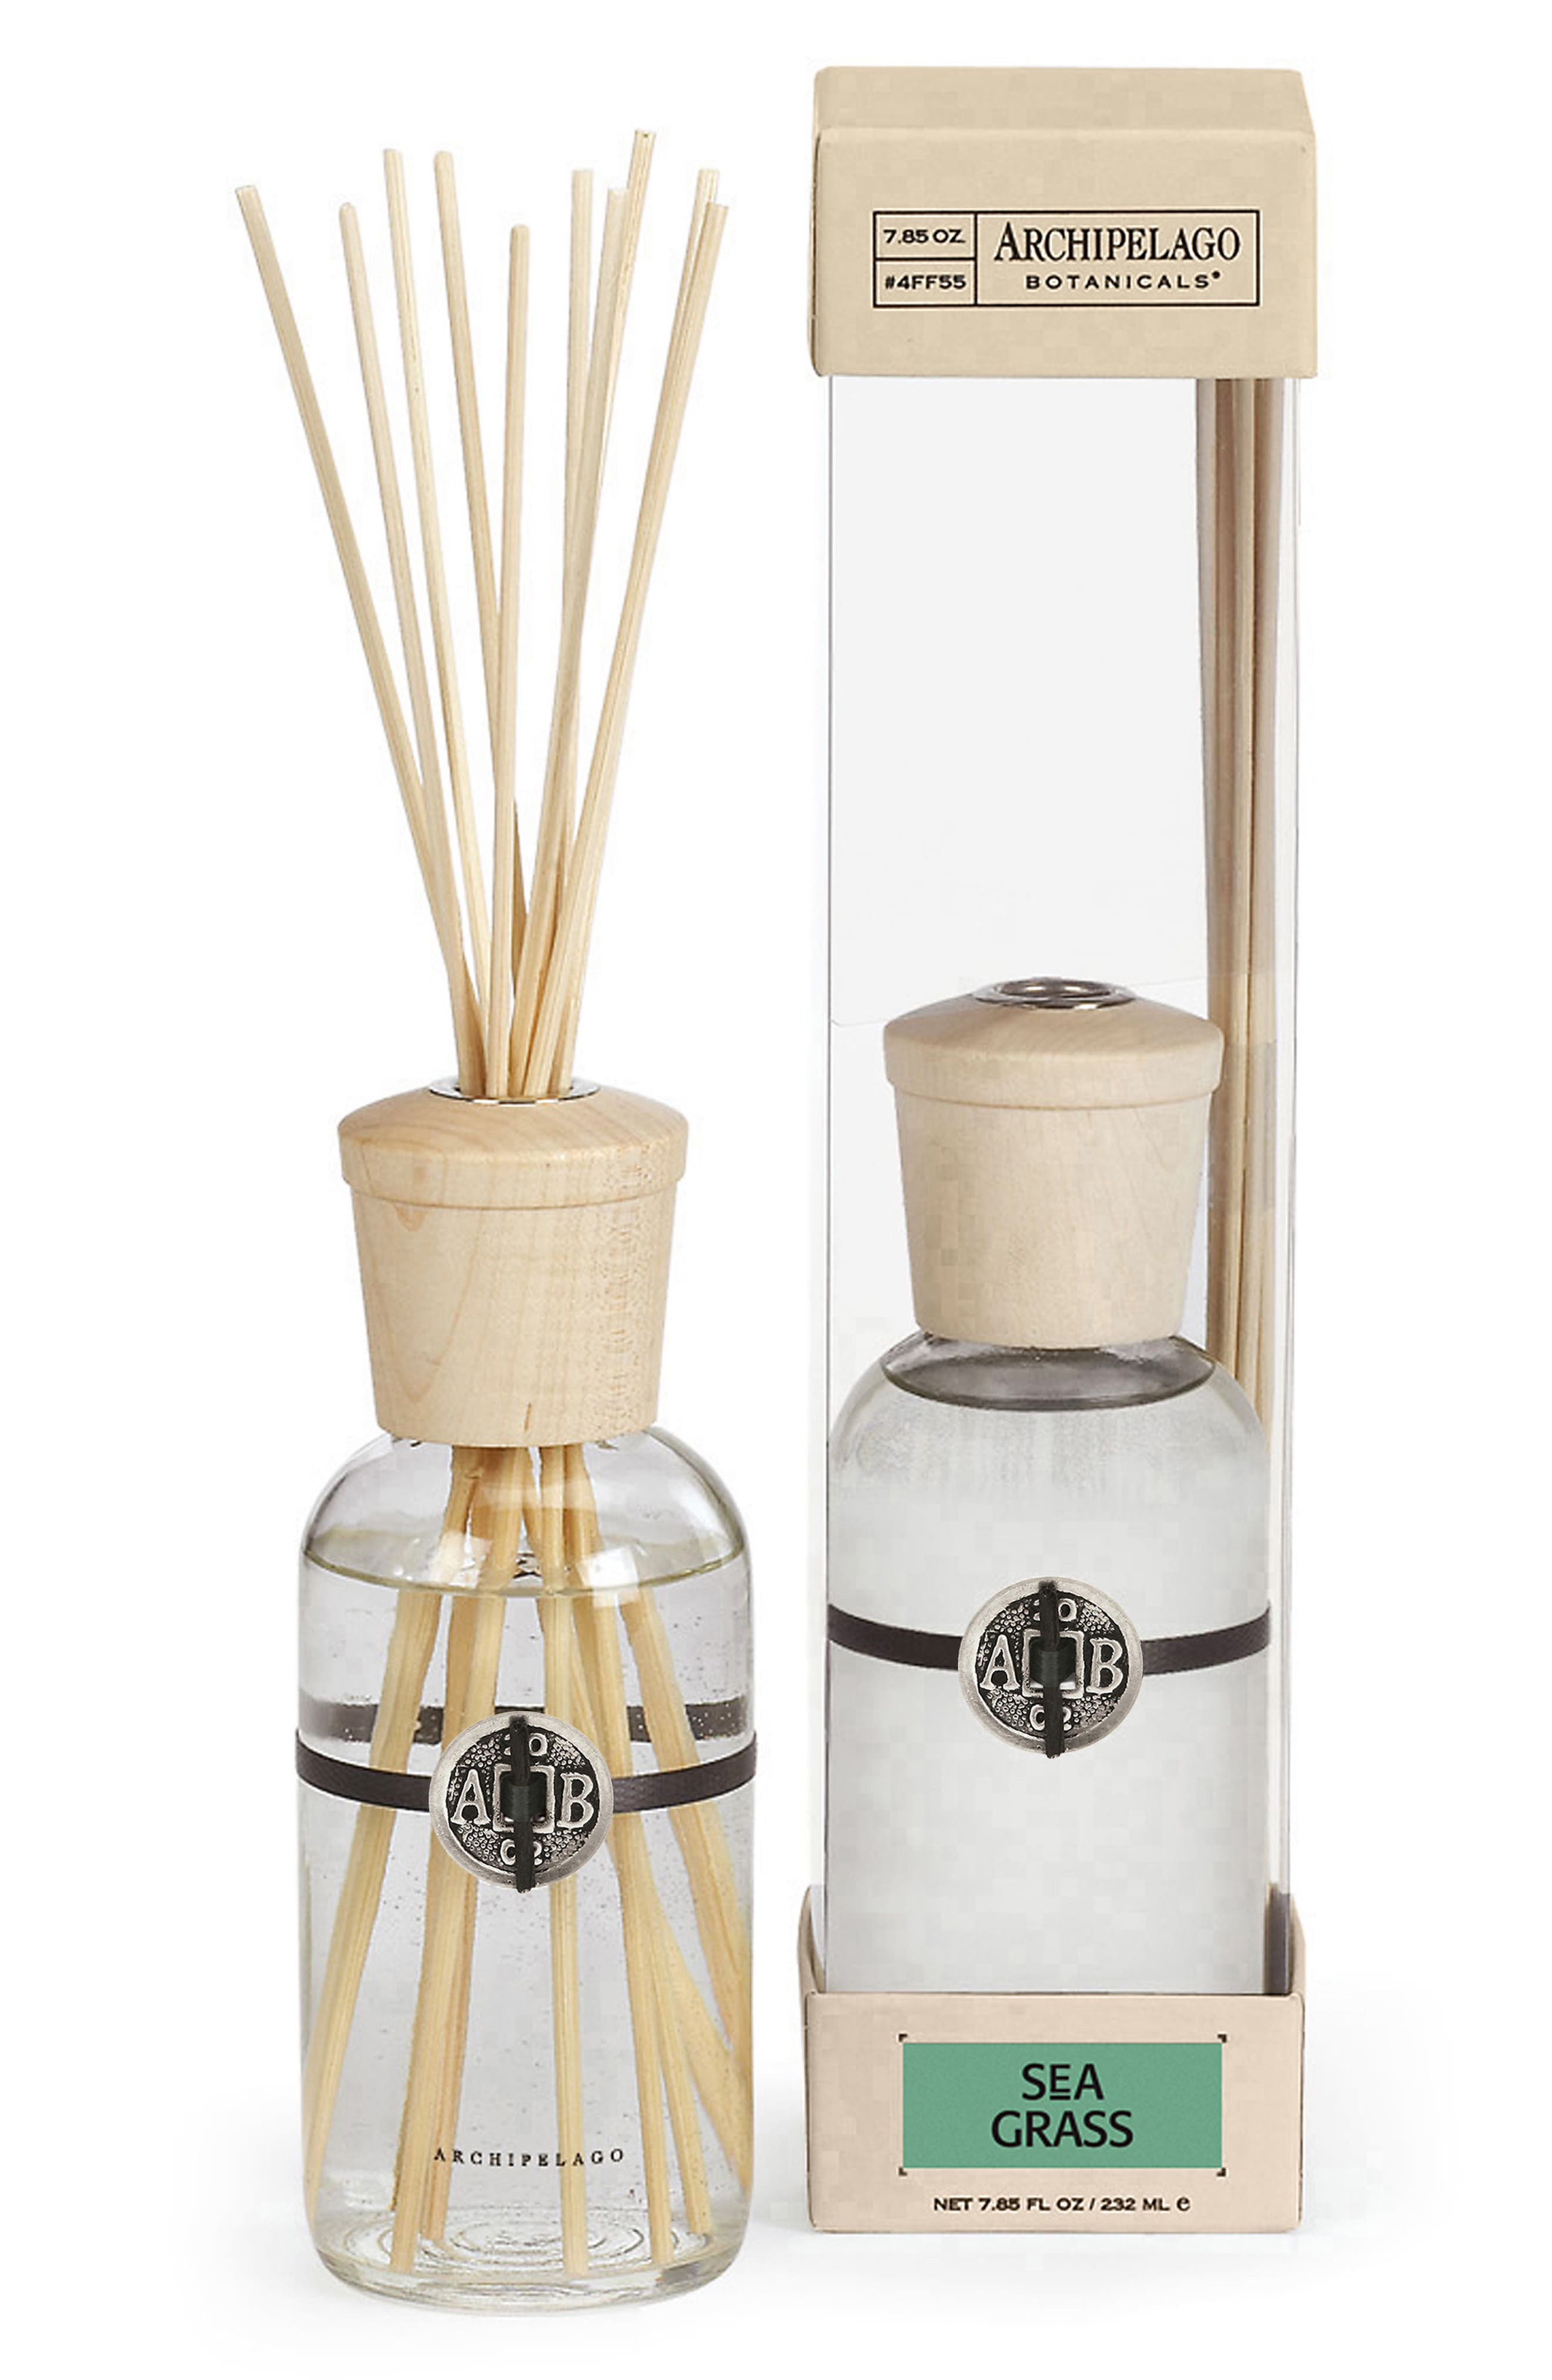 ARCHIPELAGO BOTANICALS, Fragrance Diffuser, Alternate thumbnail 2, color, SEAGRASS